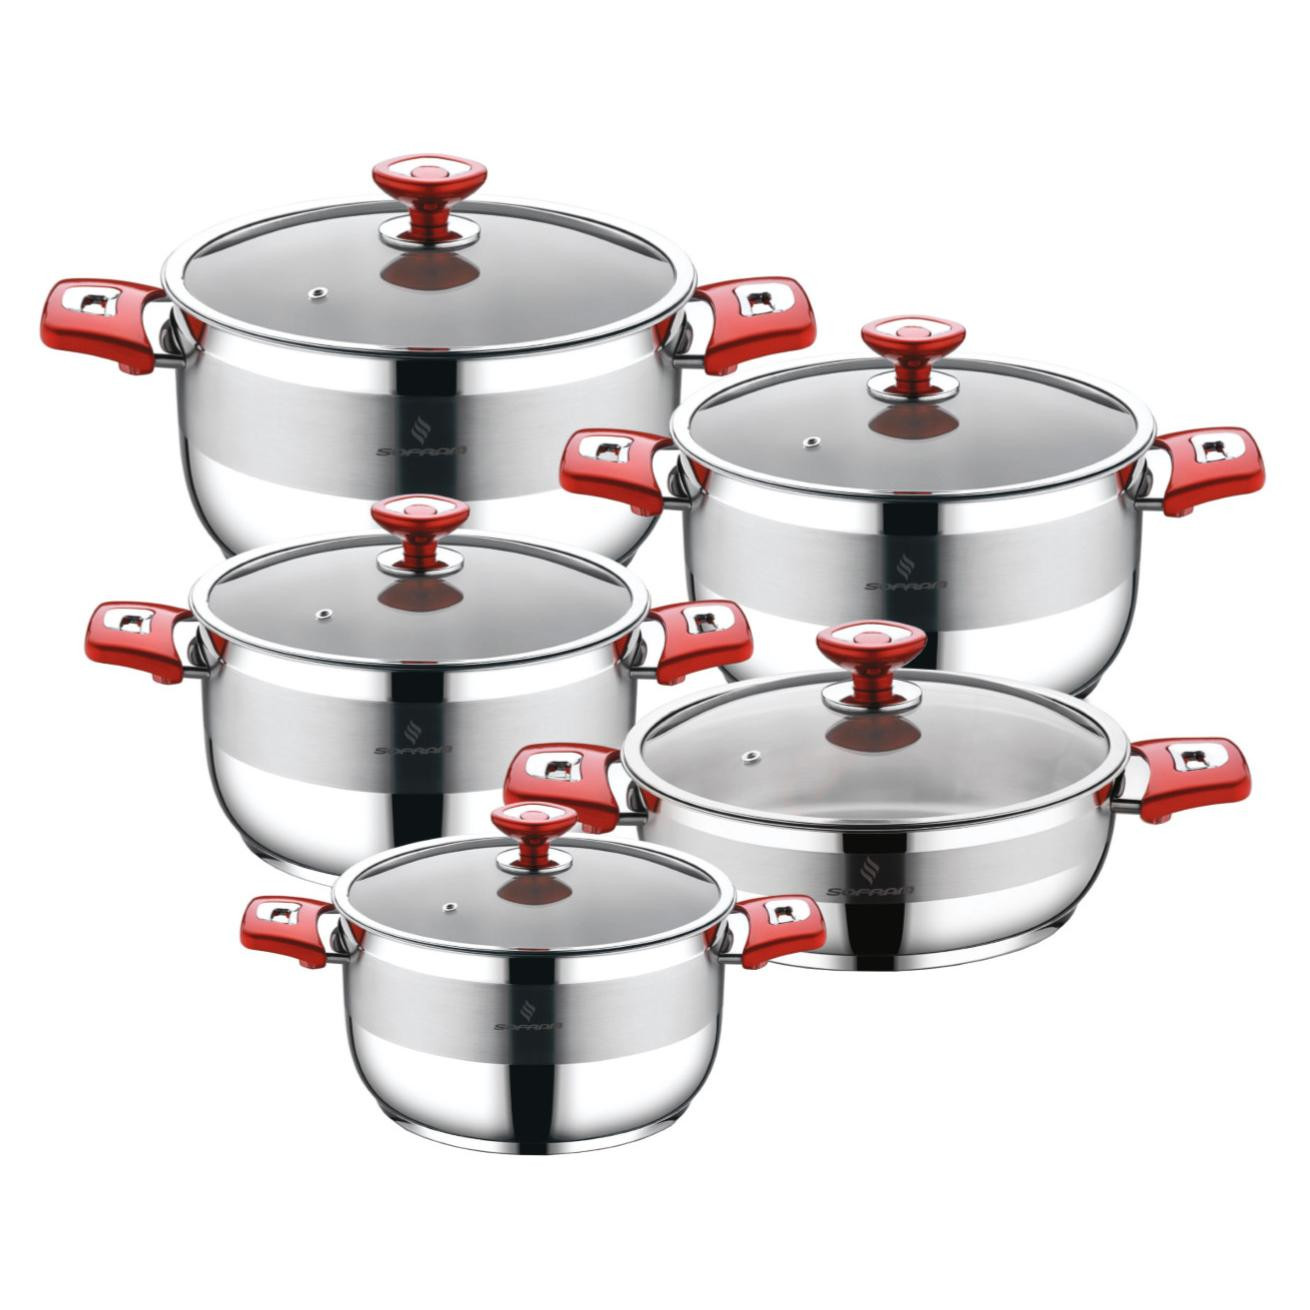 Sofram NOVA 10 Pieces Red Cookware Set